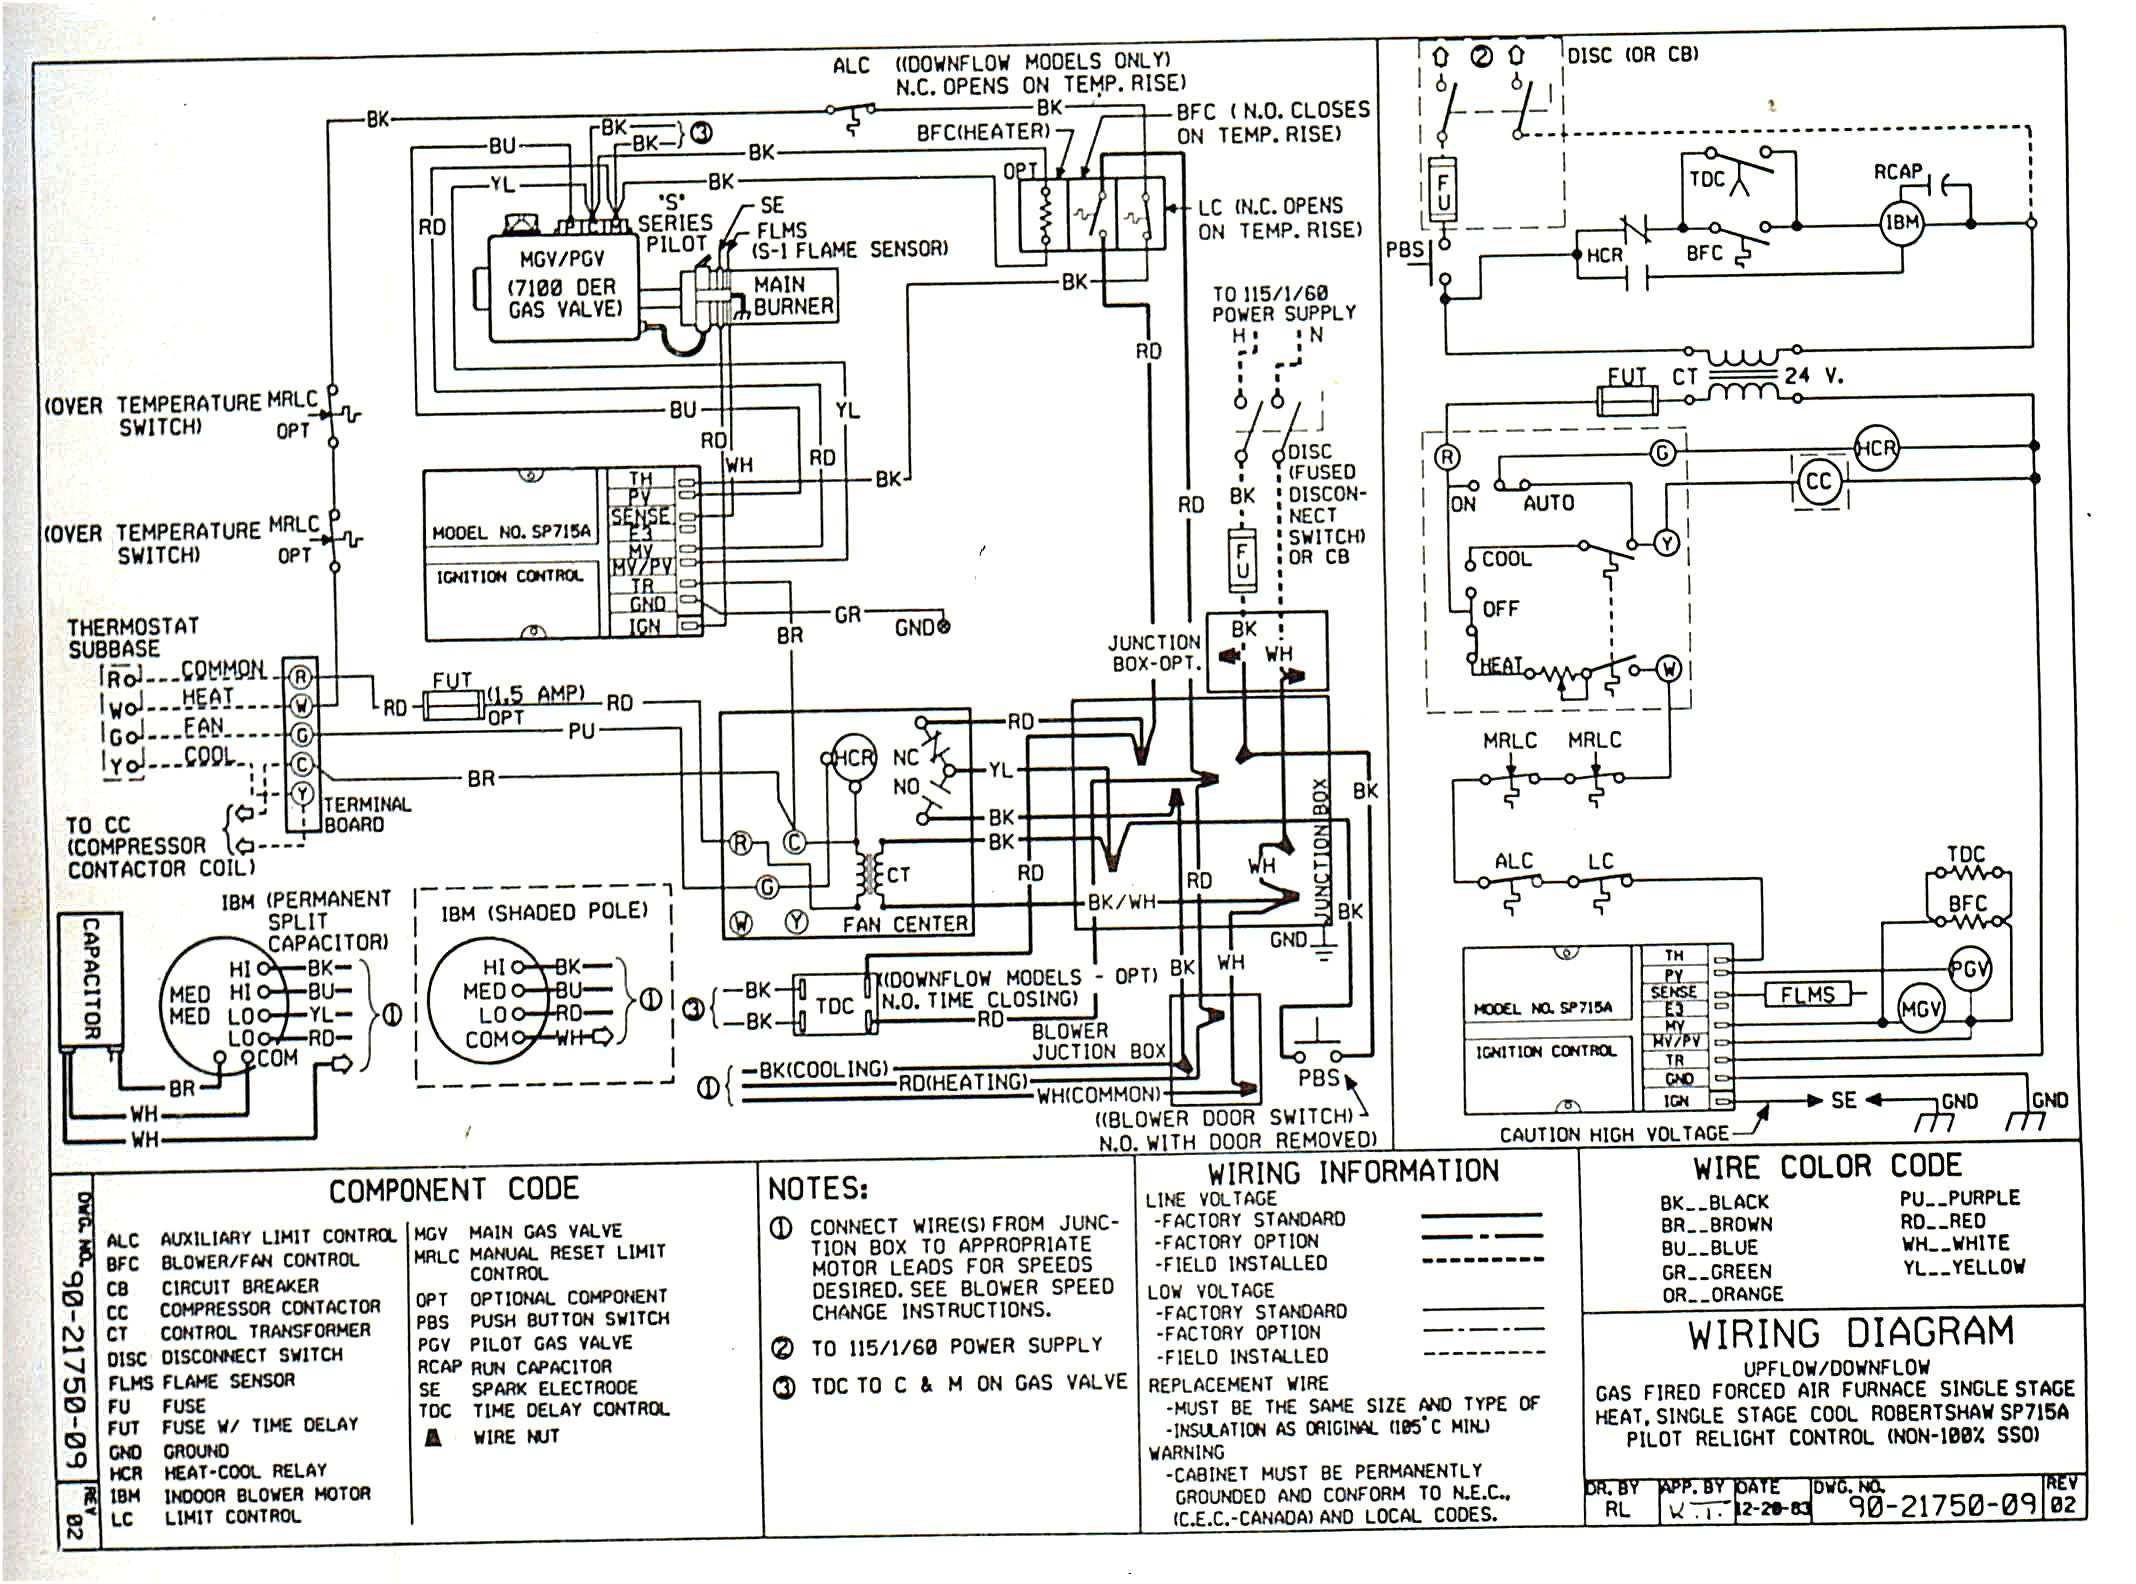 [WLLP_2054]   DIAGRAM] Payne Furnace Thermostat Wiring Diagram Free Download FULL Version  HD Quality Free Download - DIAGRAMONFLY.ARTEMISMAIL.FR | Carrier Furnace Wiring Schematics |  | Diagram Database